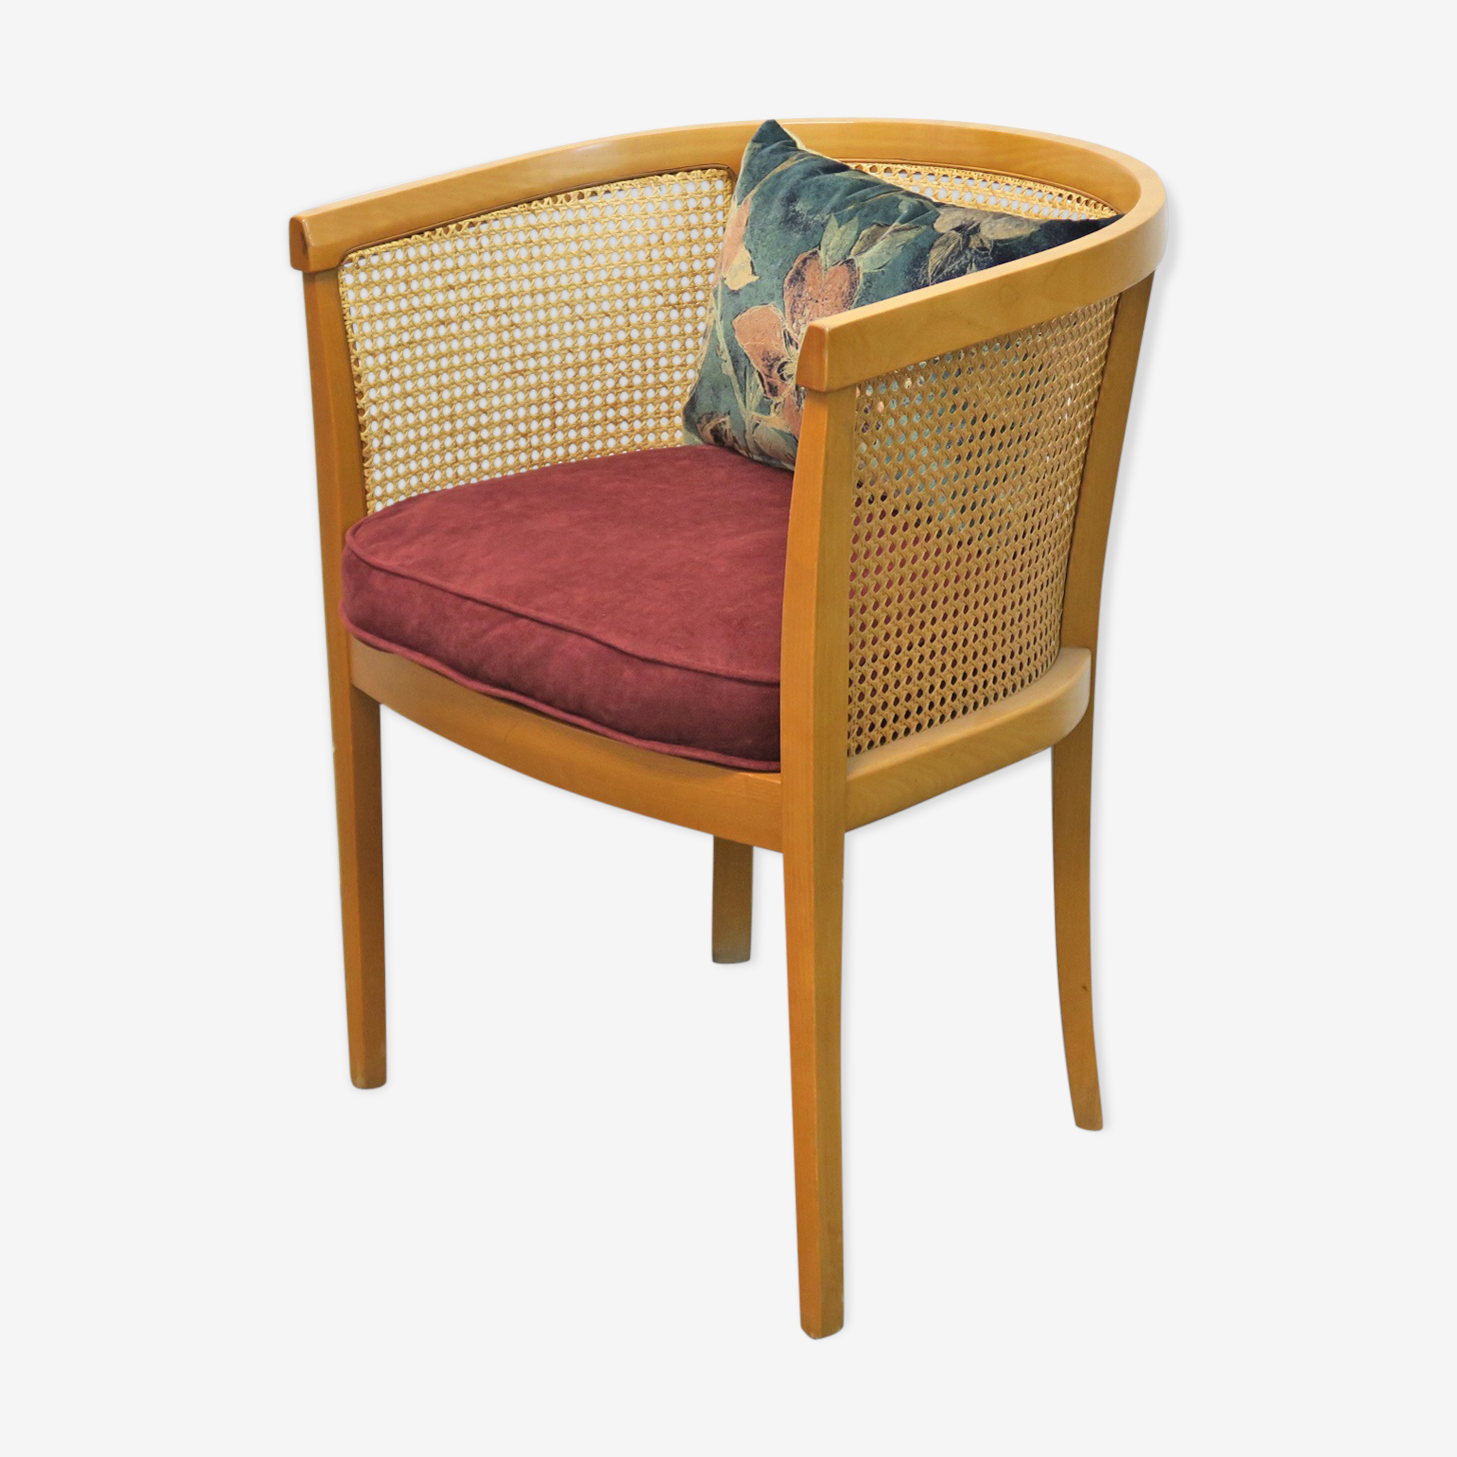 Armchair convertible in caning